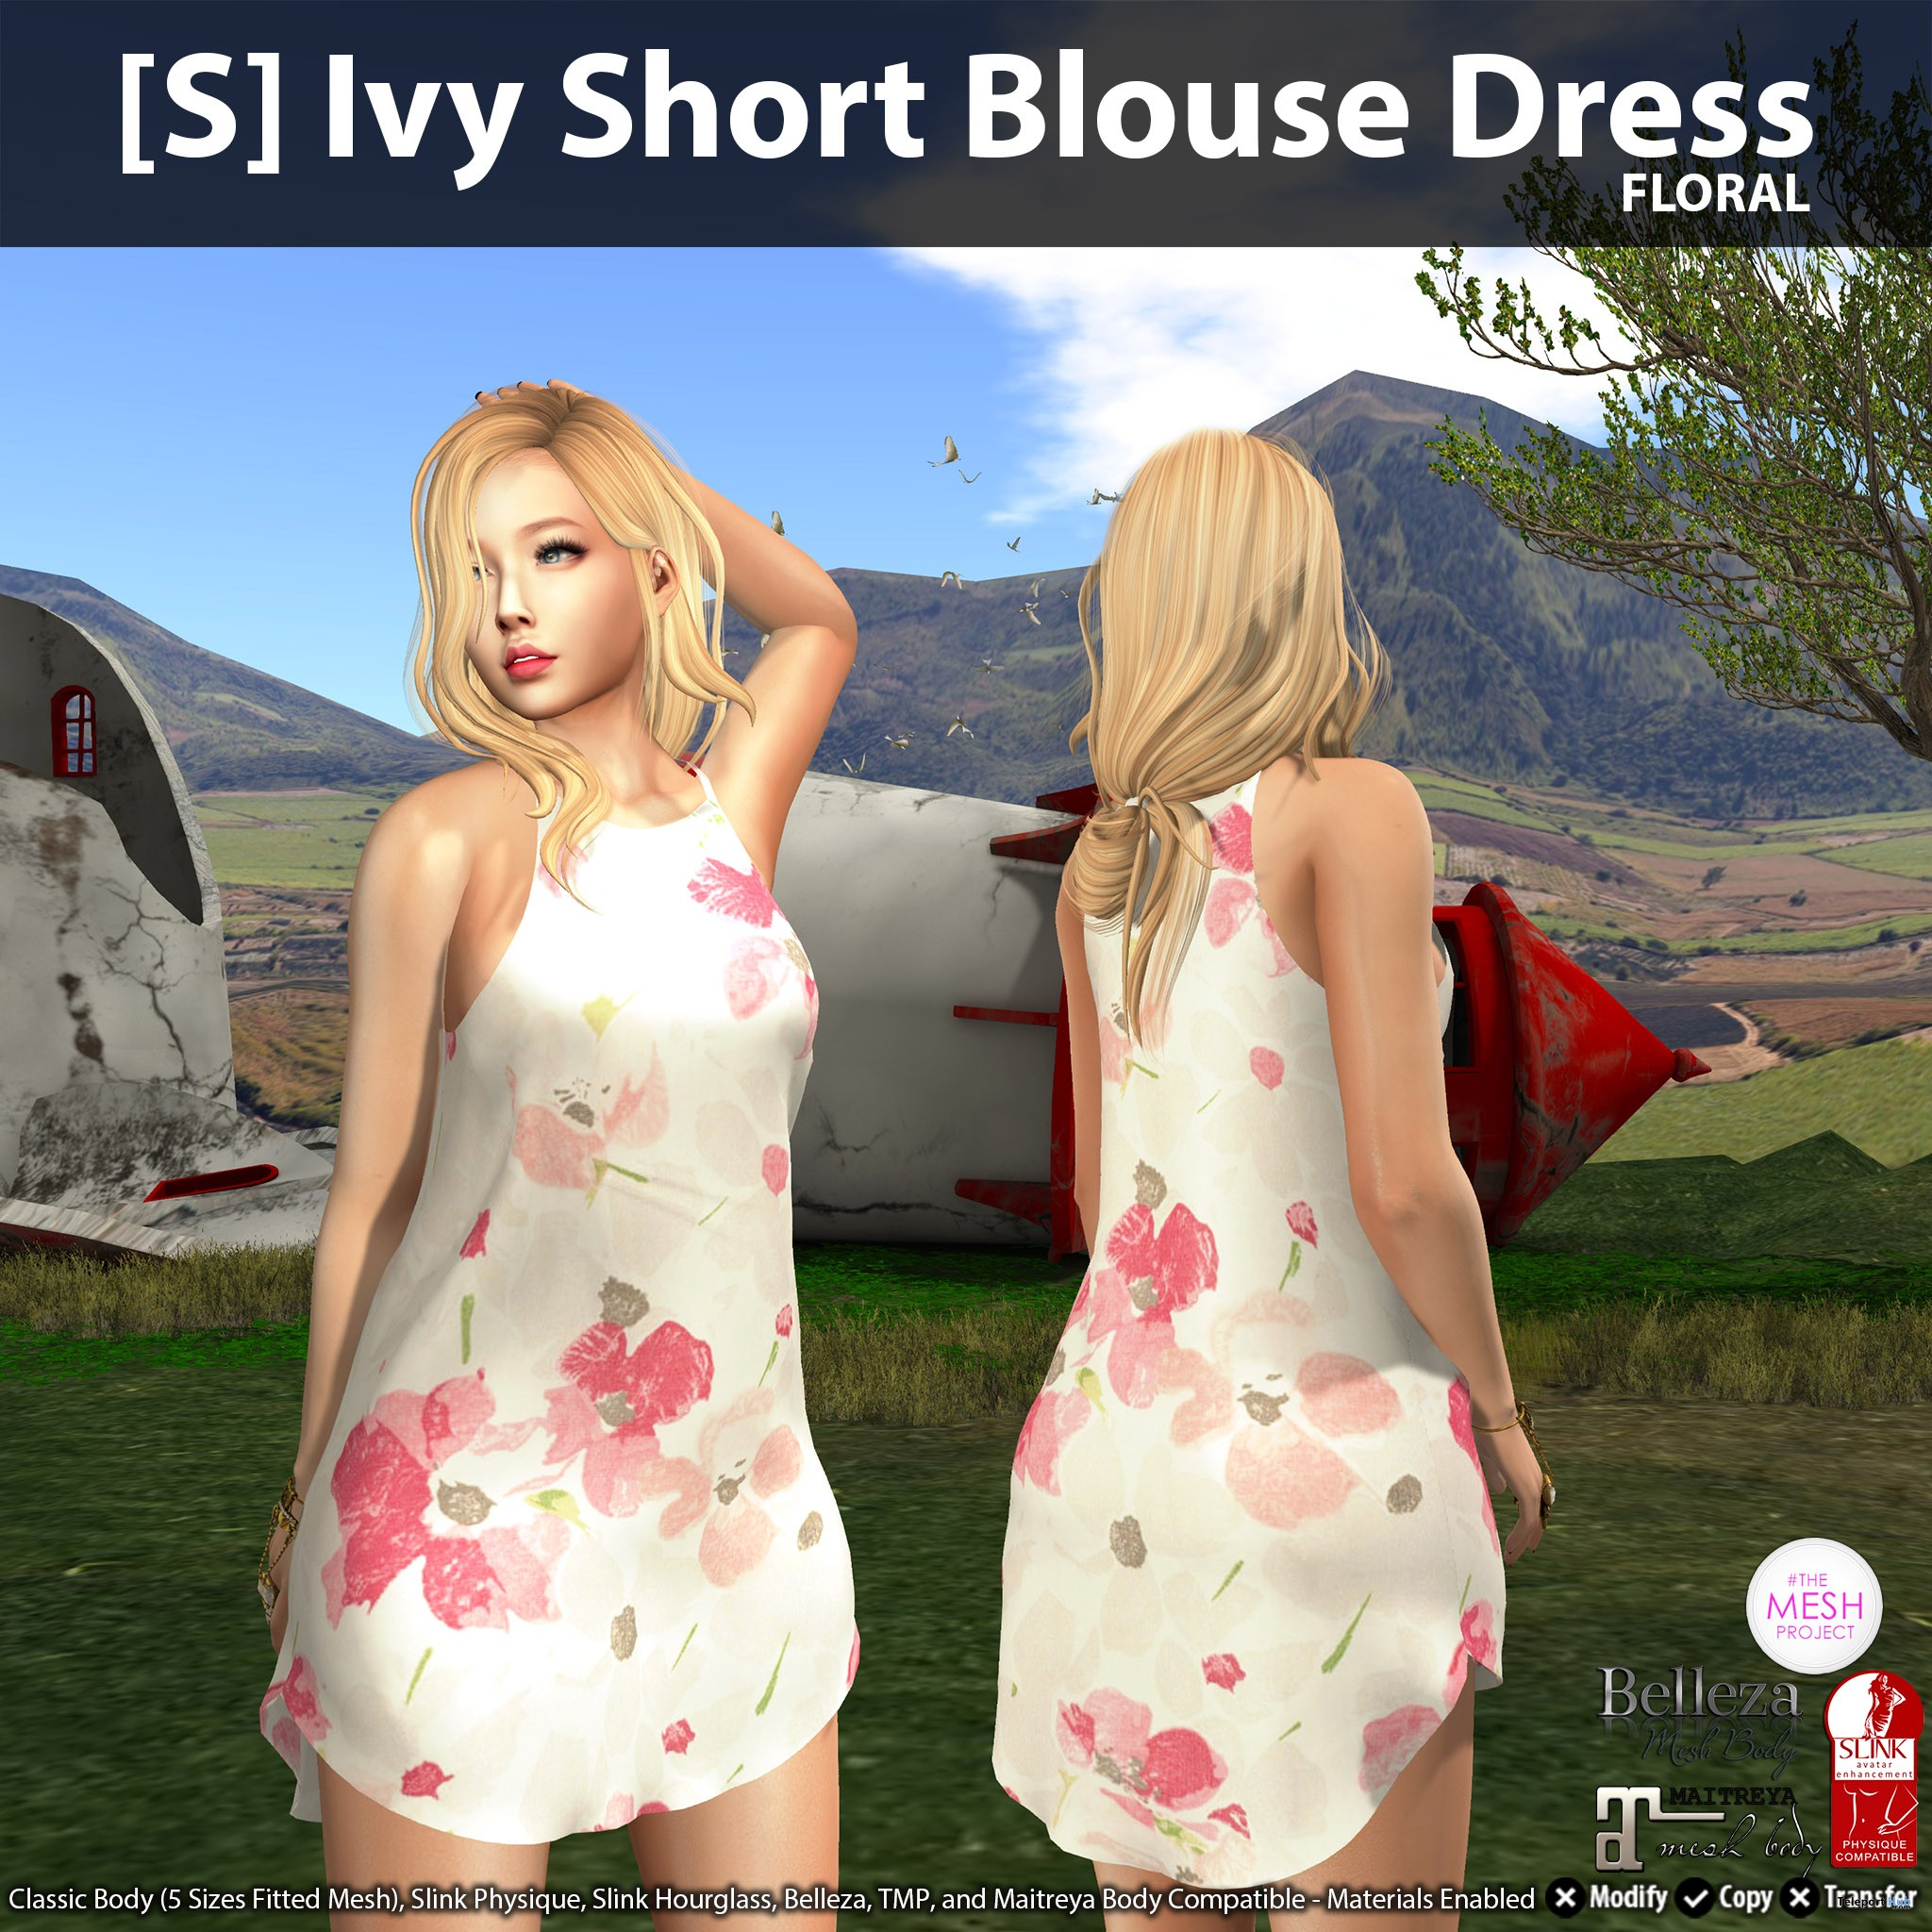 New Release: [S] Ivy Short Blouse Dress by [satus Inc] - Teleport Hub - teleporthub.com